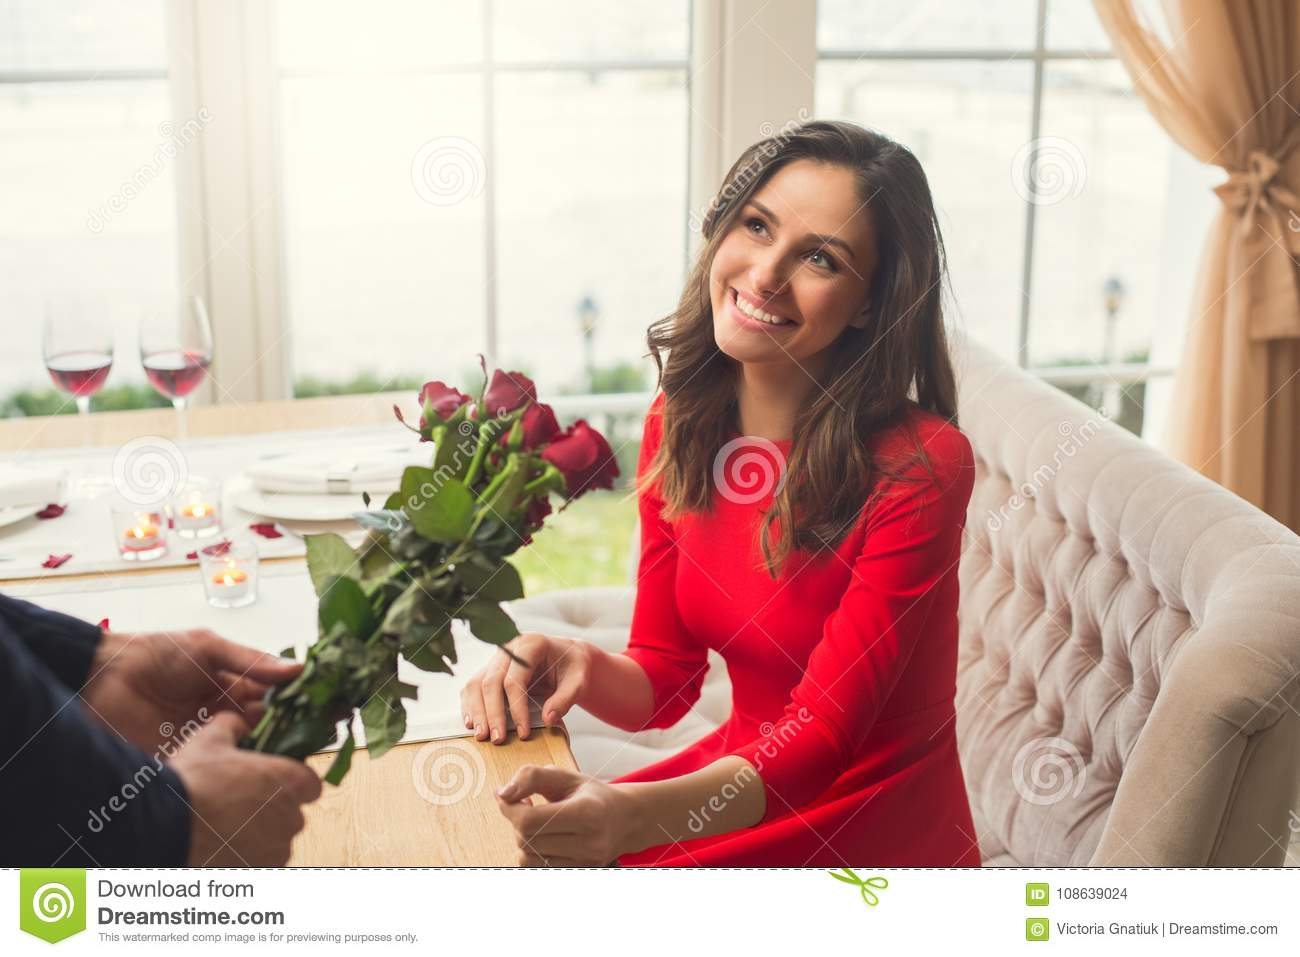 Young Men Giving Flowers To A Women Having Romantic Dinner In The Restaurant Smiling